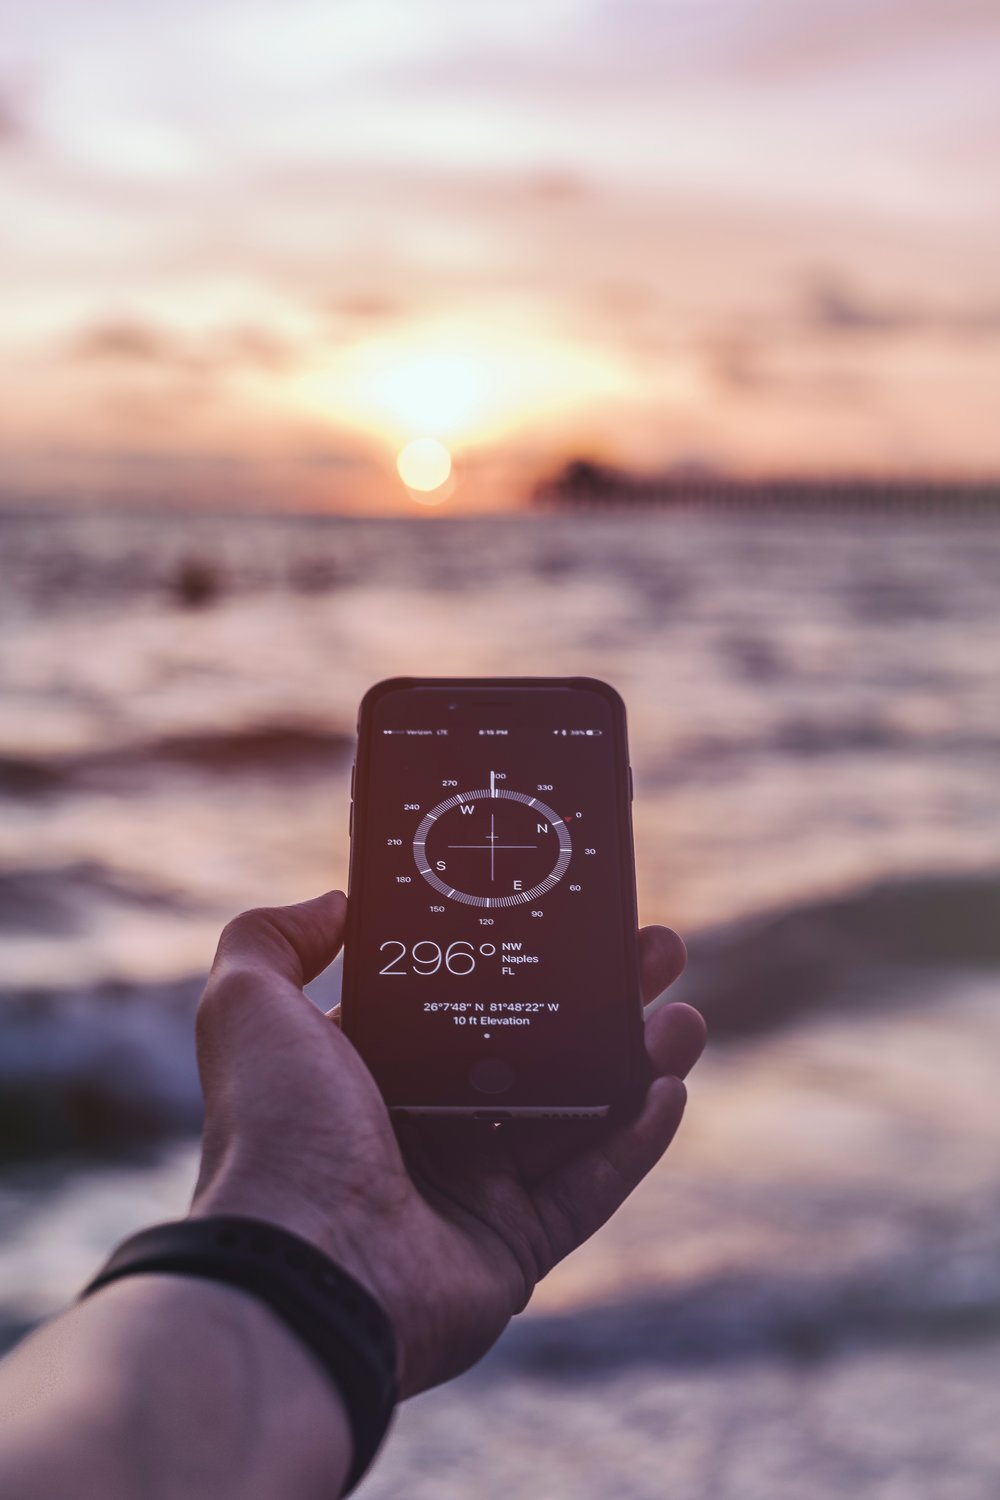 The iPhone compass app is open and pointed toward the sunset